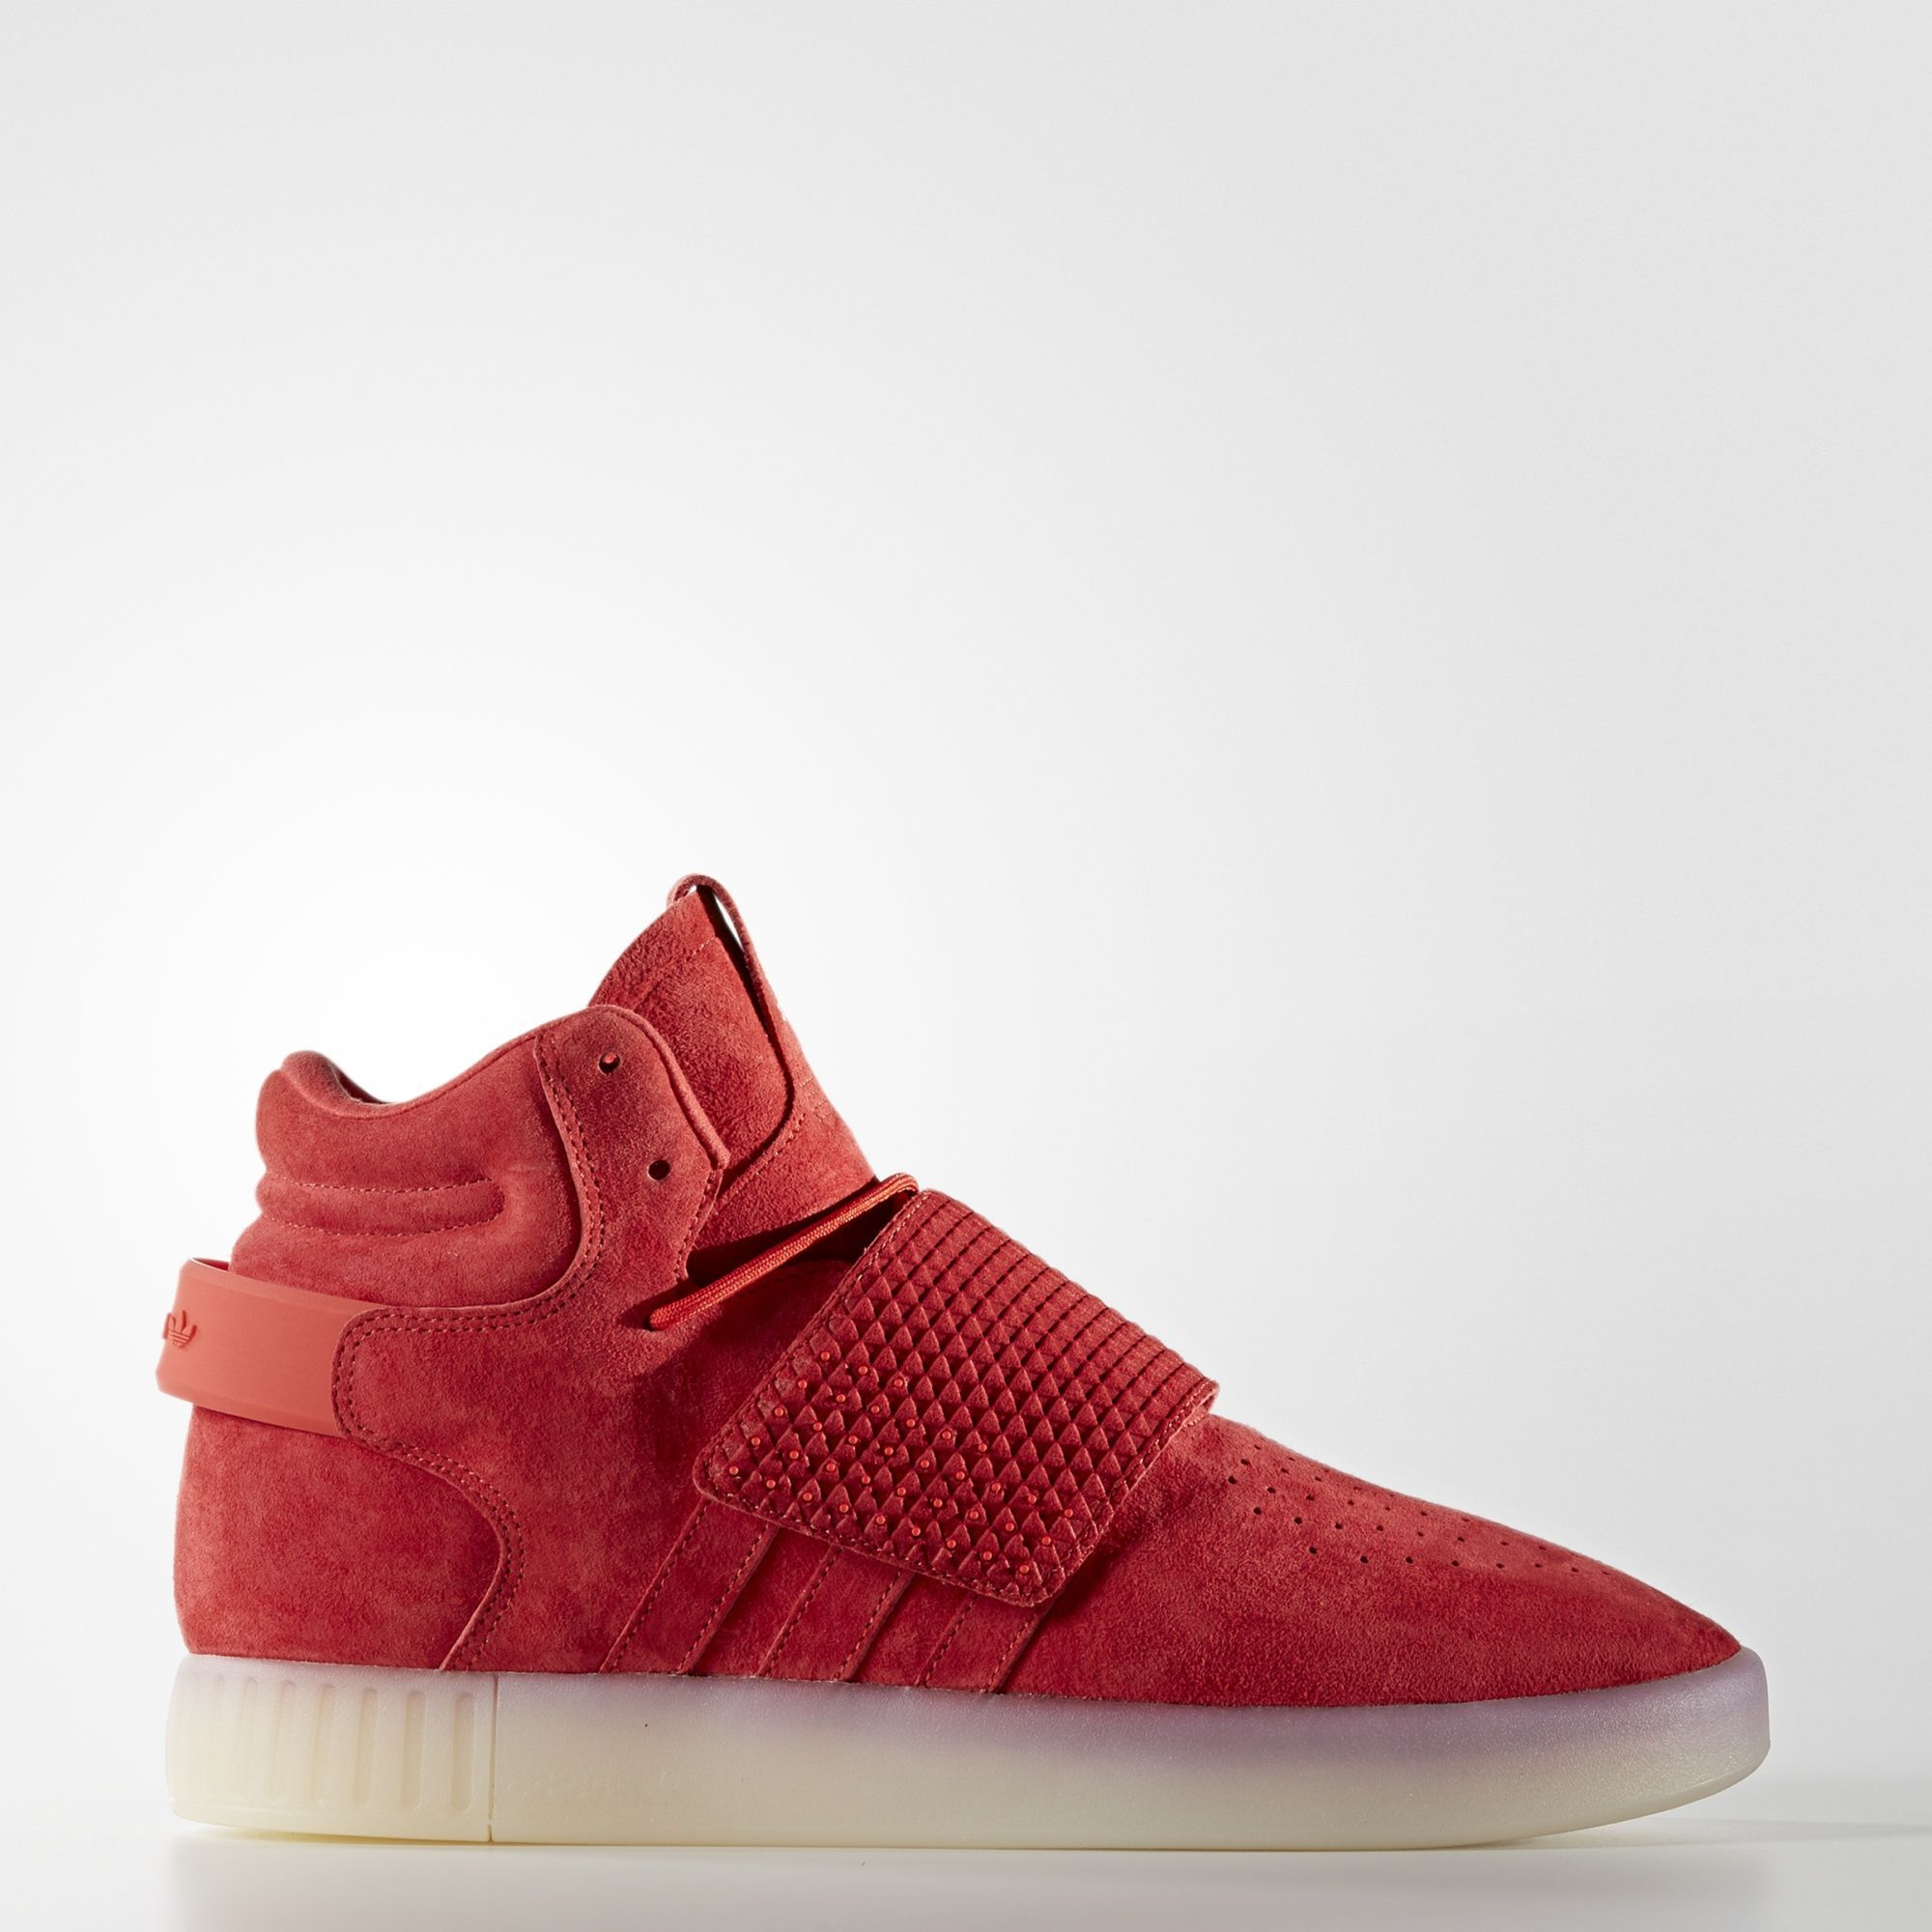 Footwear · adidas - Tubular Invader Strap Shoes